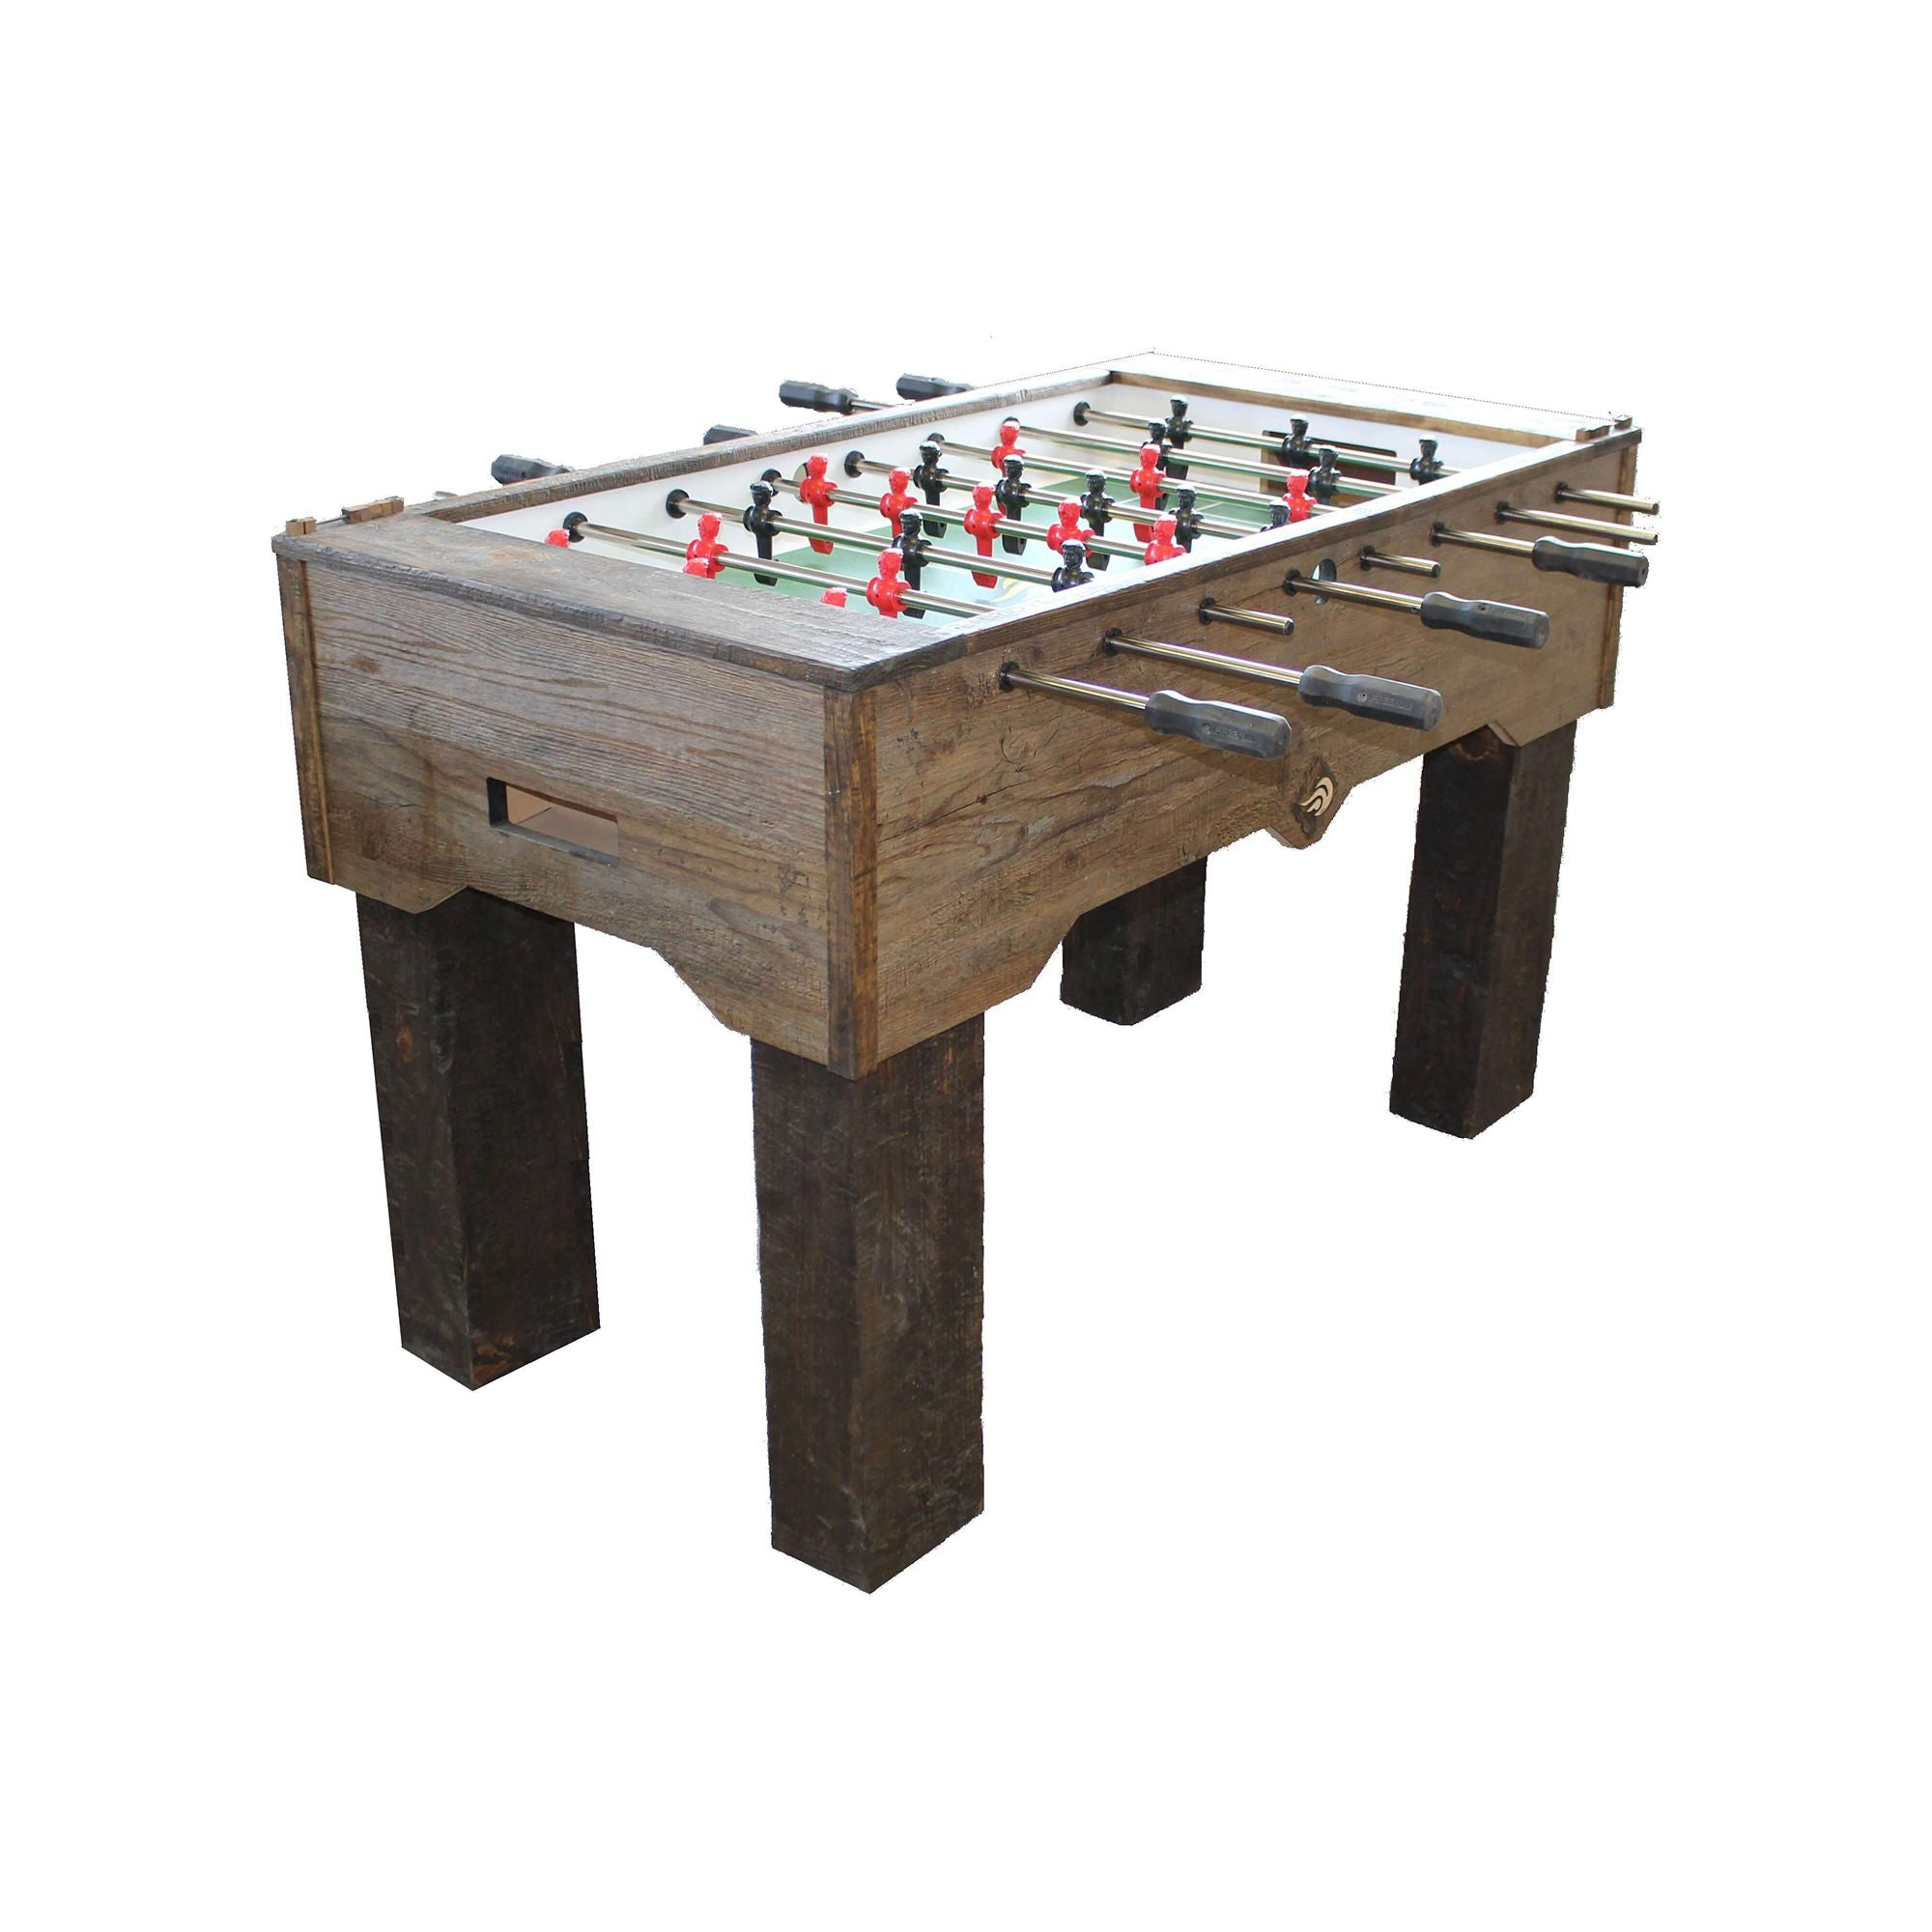 "Performance Games Sure Shot RL Pedestal Base Foosball Table 56"" - Gaming Blaze"